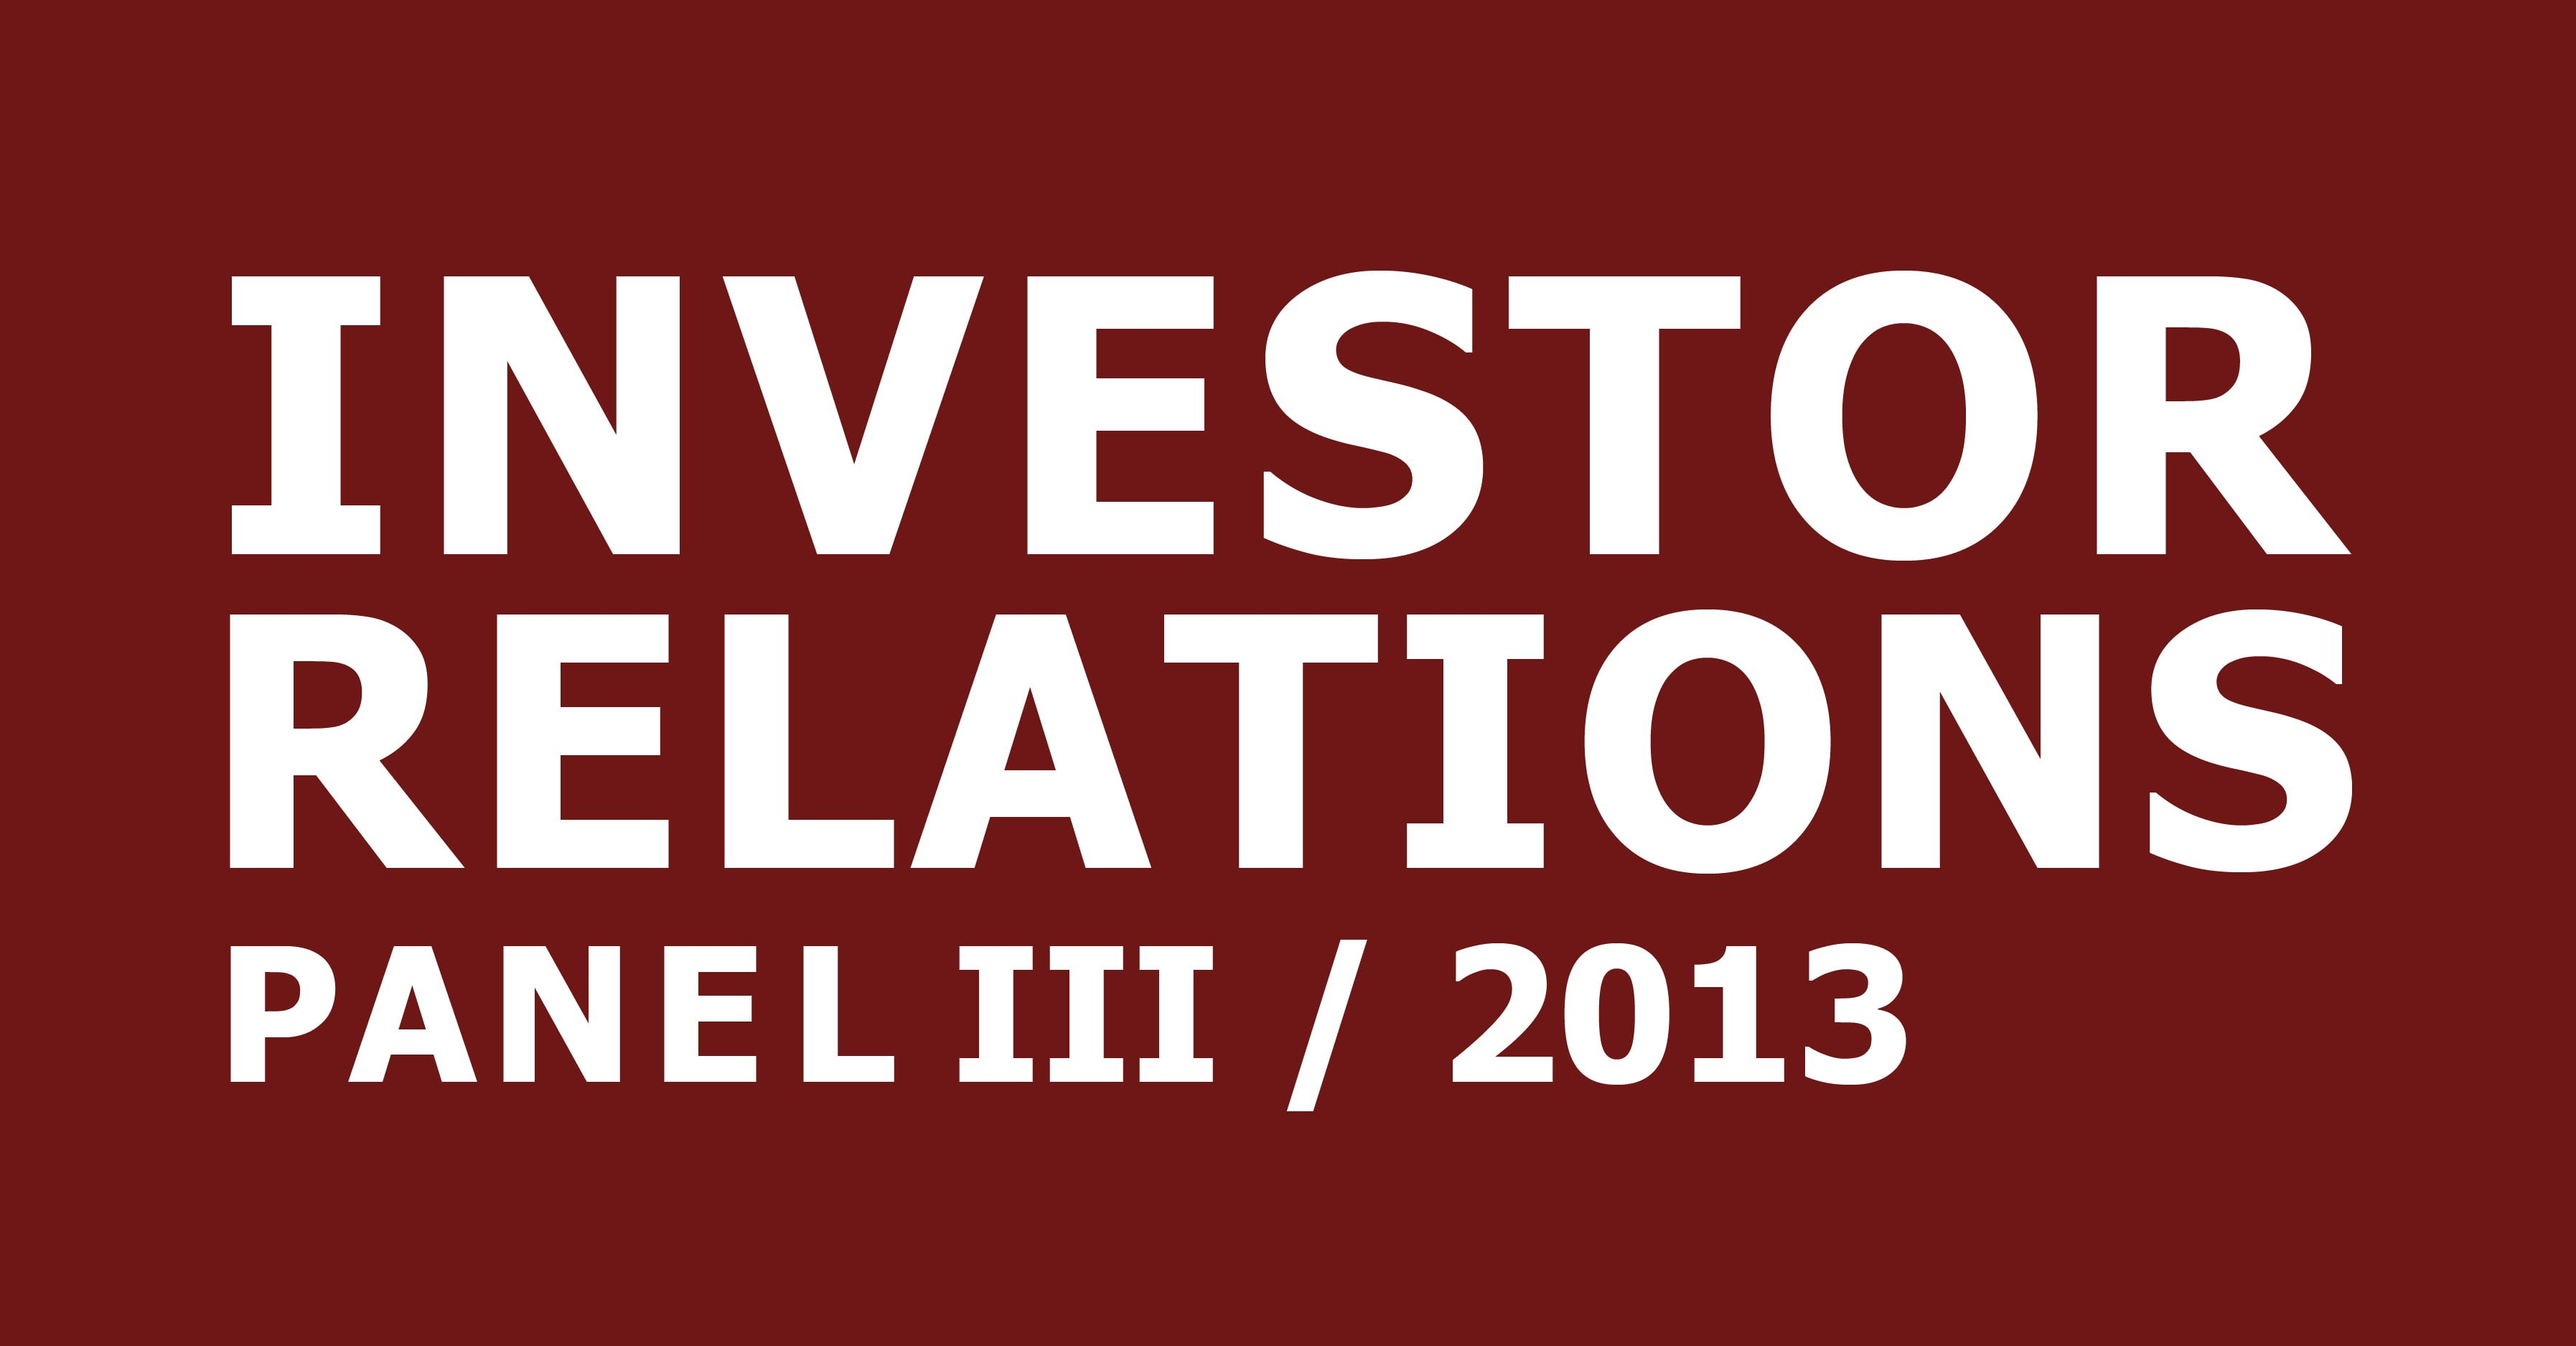 cometis AG Investor Relations-Panel III 2013